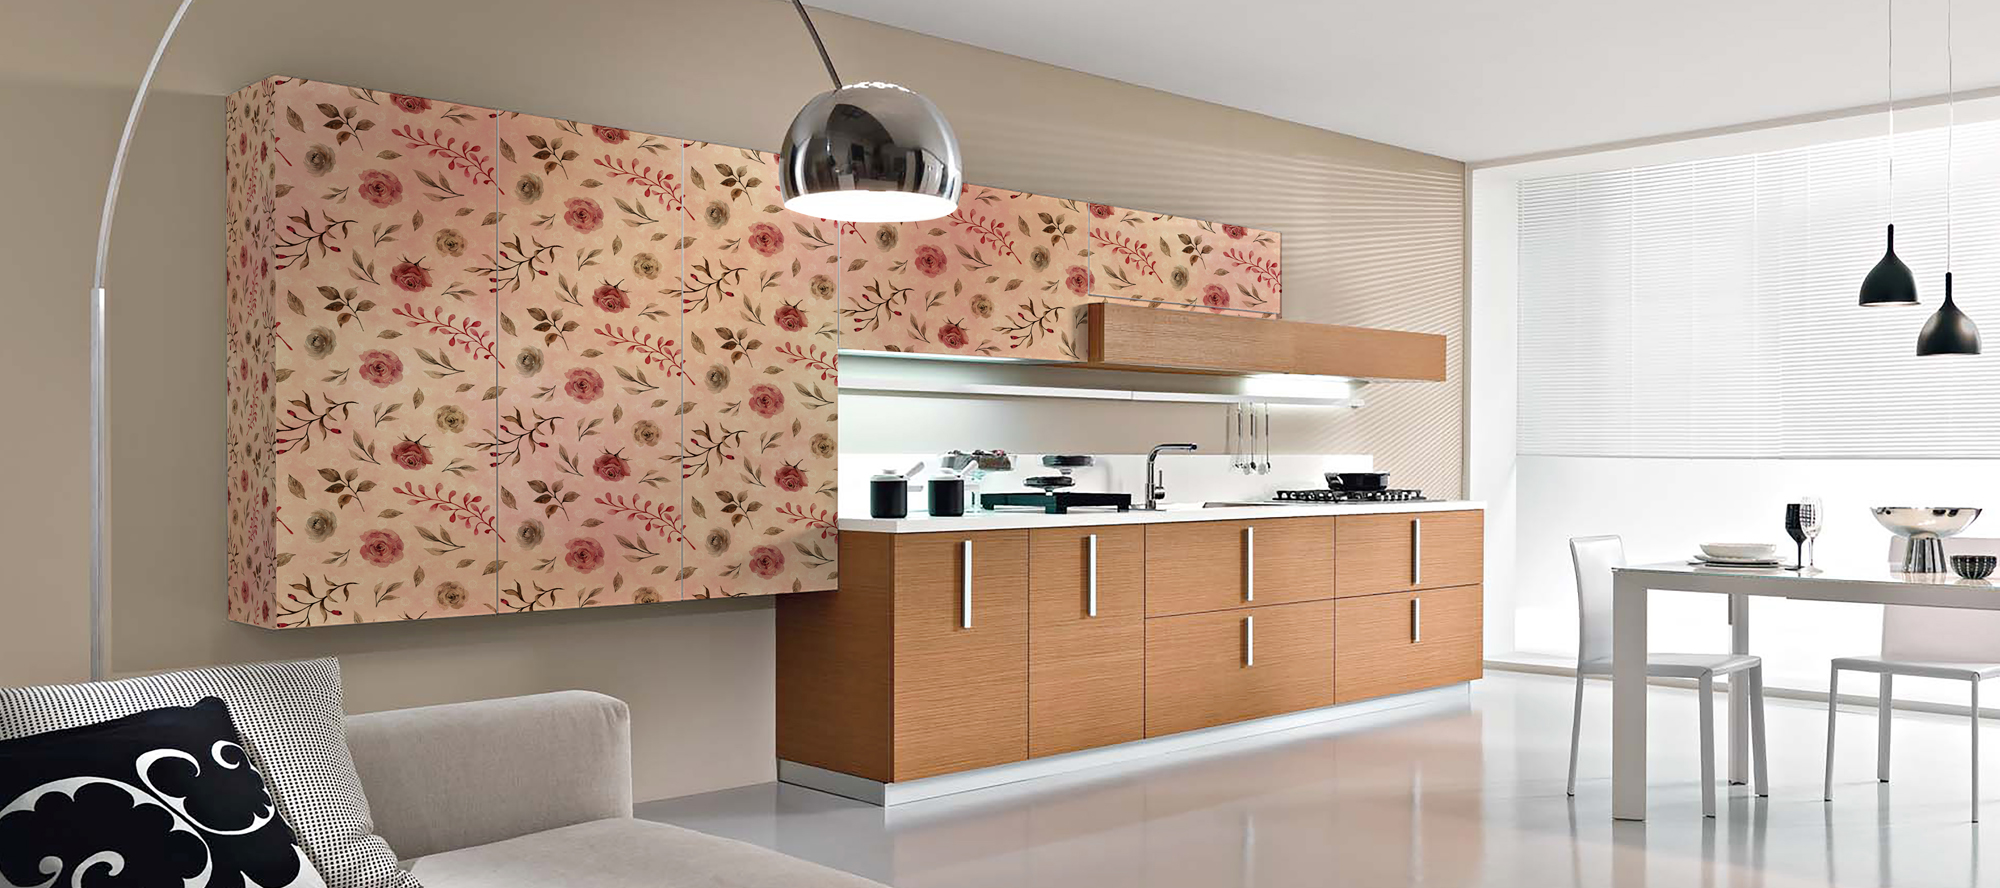 D'infinity, Flowery World Digital Laminates For Kitchen-Sundek International